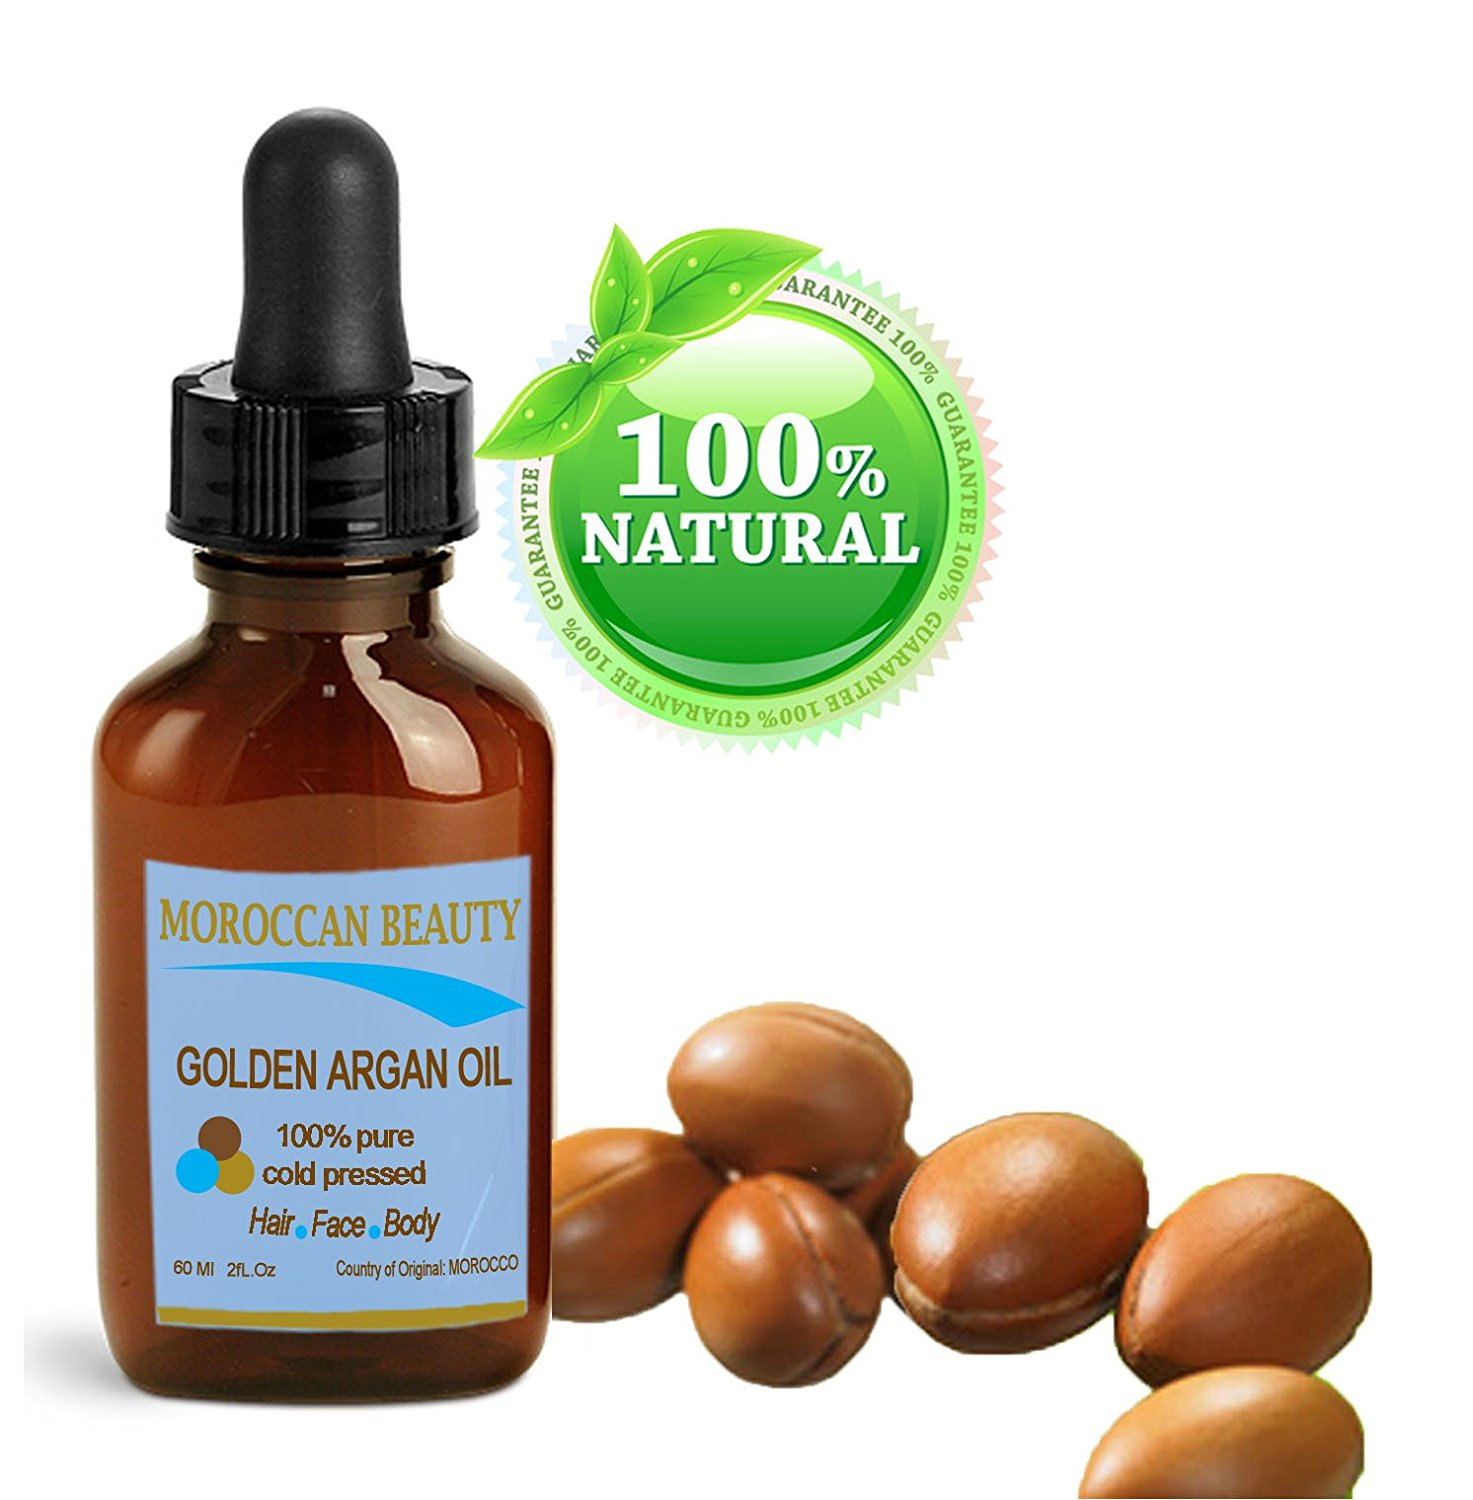 Moroccan Beauty Golden Argan Oil, 100% Pure/ Natural. For Face, Hair and Body. 1oz-30ml